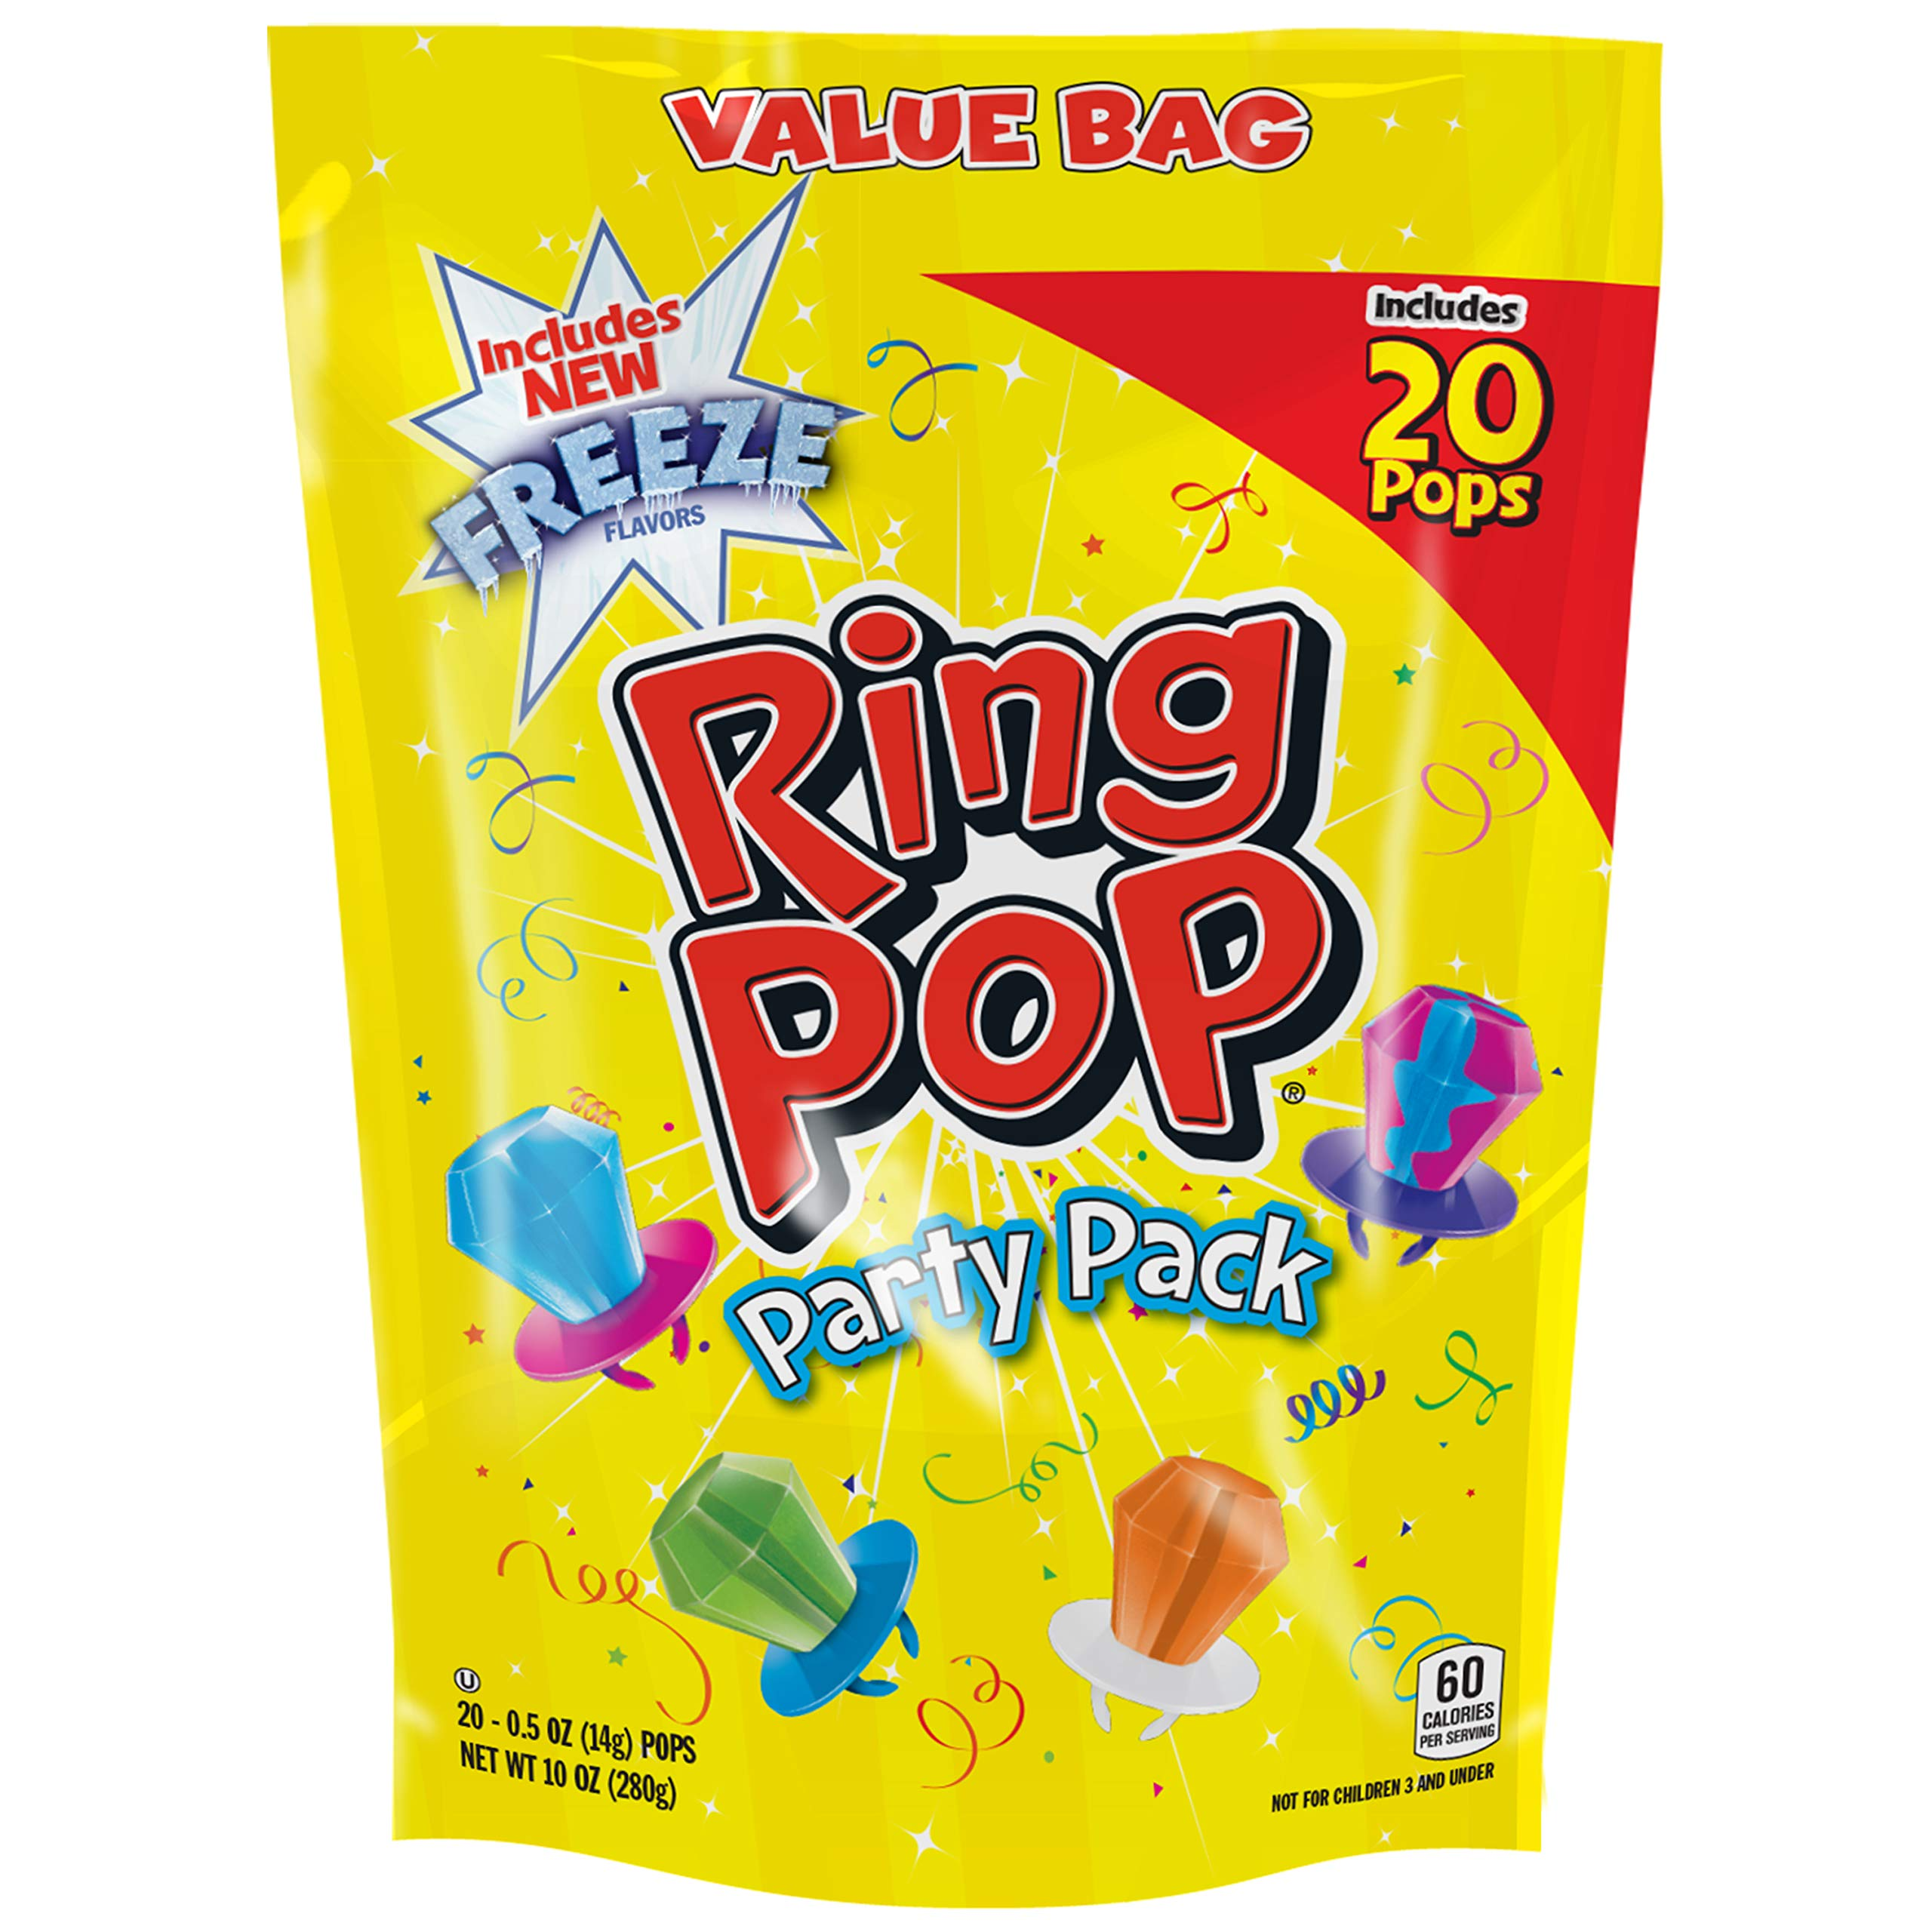 Ring POP Individually Wrapped Variety Halloween Party Pack - Candy Lollipop Suckers W/ Assorted Flavors, 20 Count (Pack of 1) by Ring Pop